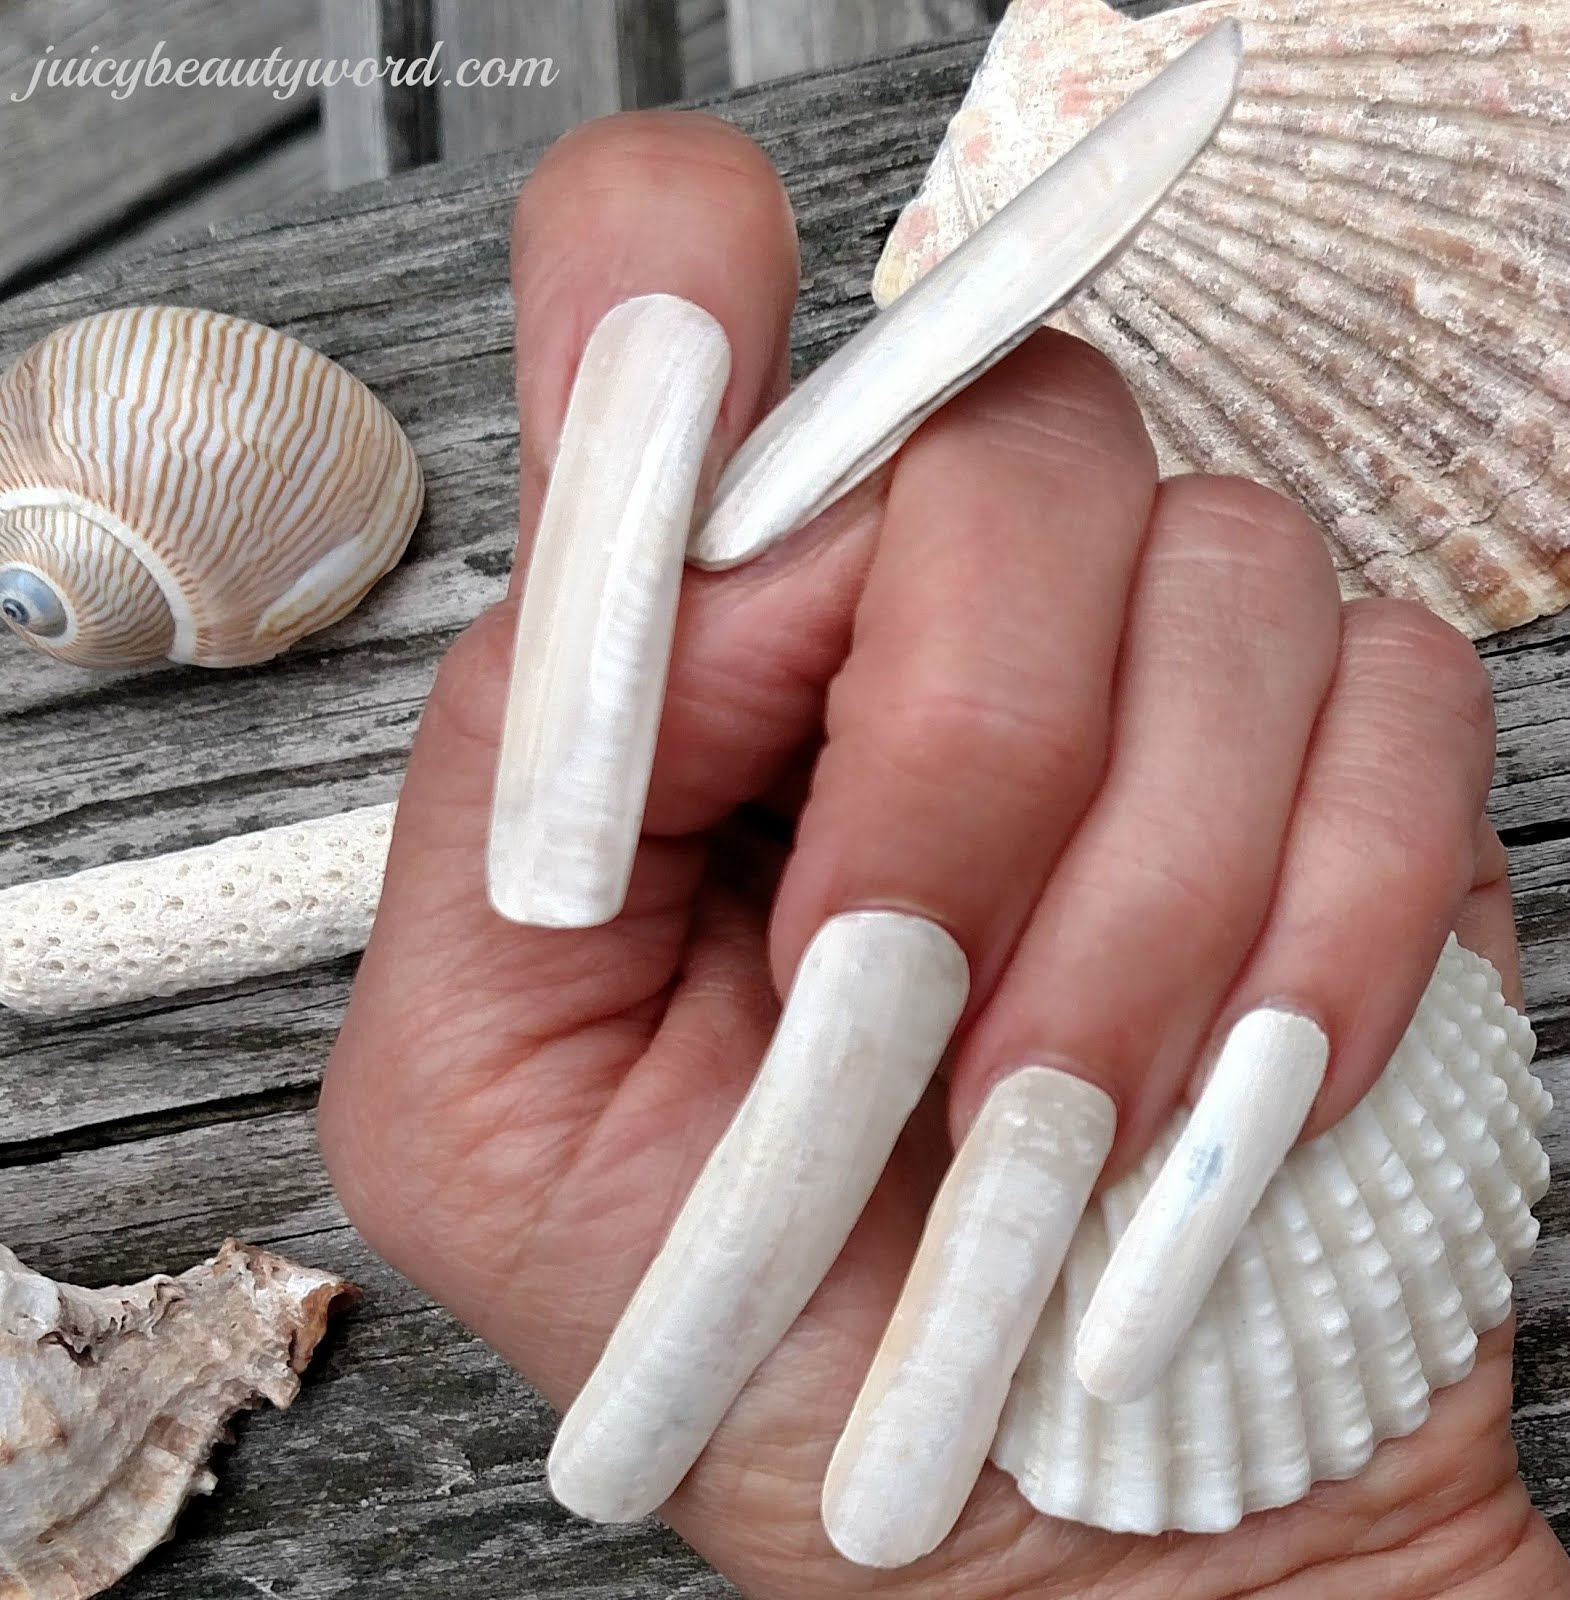 SEA SHELL NAILS